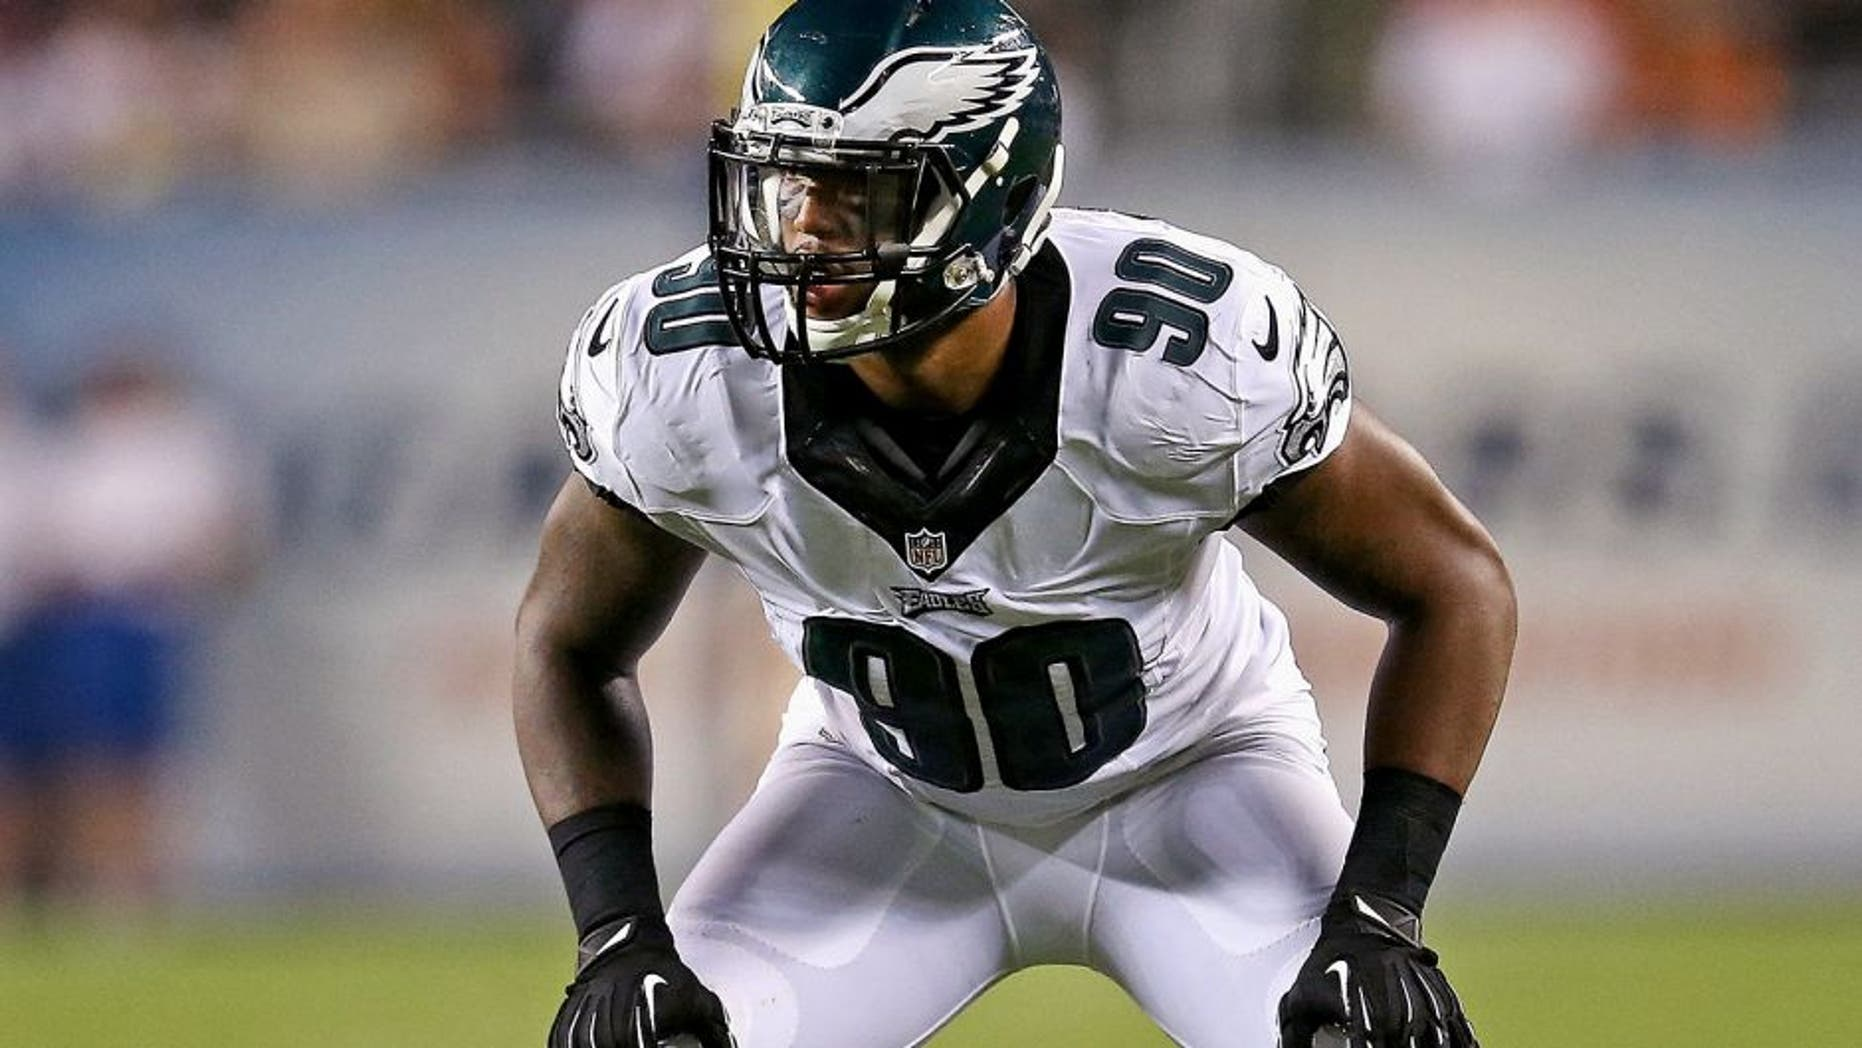 CHICAGO, IL - AUGUST 08: Marcus Smith II #90 of the Philadelphia Eagles during a preseason game against the Chicago Bears at Soldier Field on August 8, 2014 in Chicago, Illinois. (Photo by Jonathan Daniel/Getty Images)